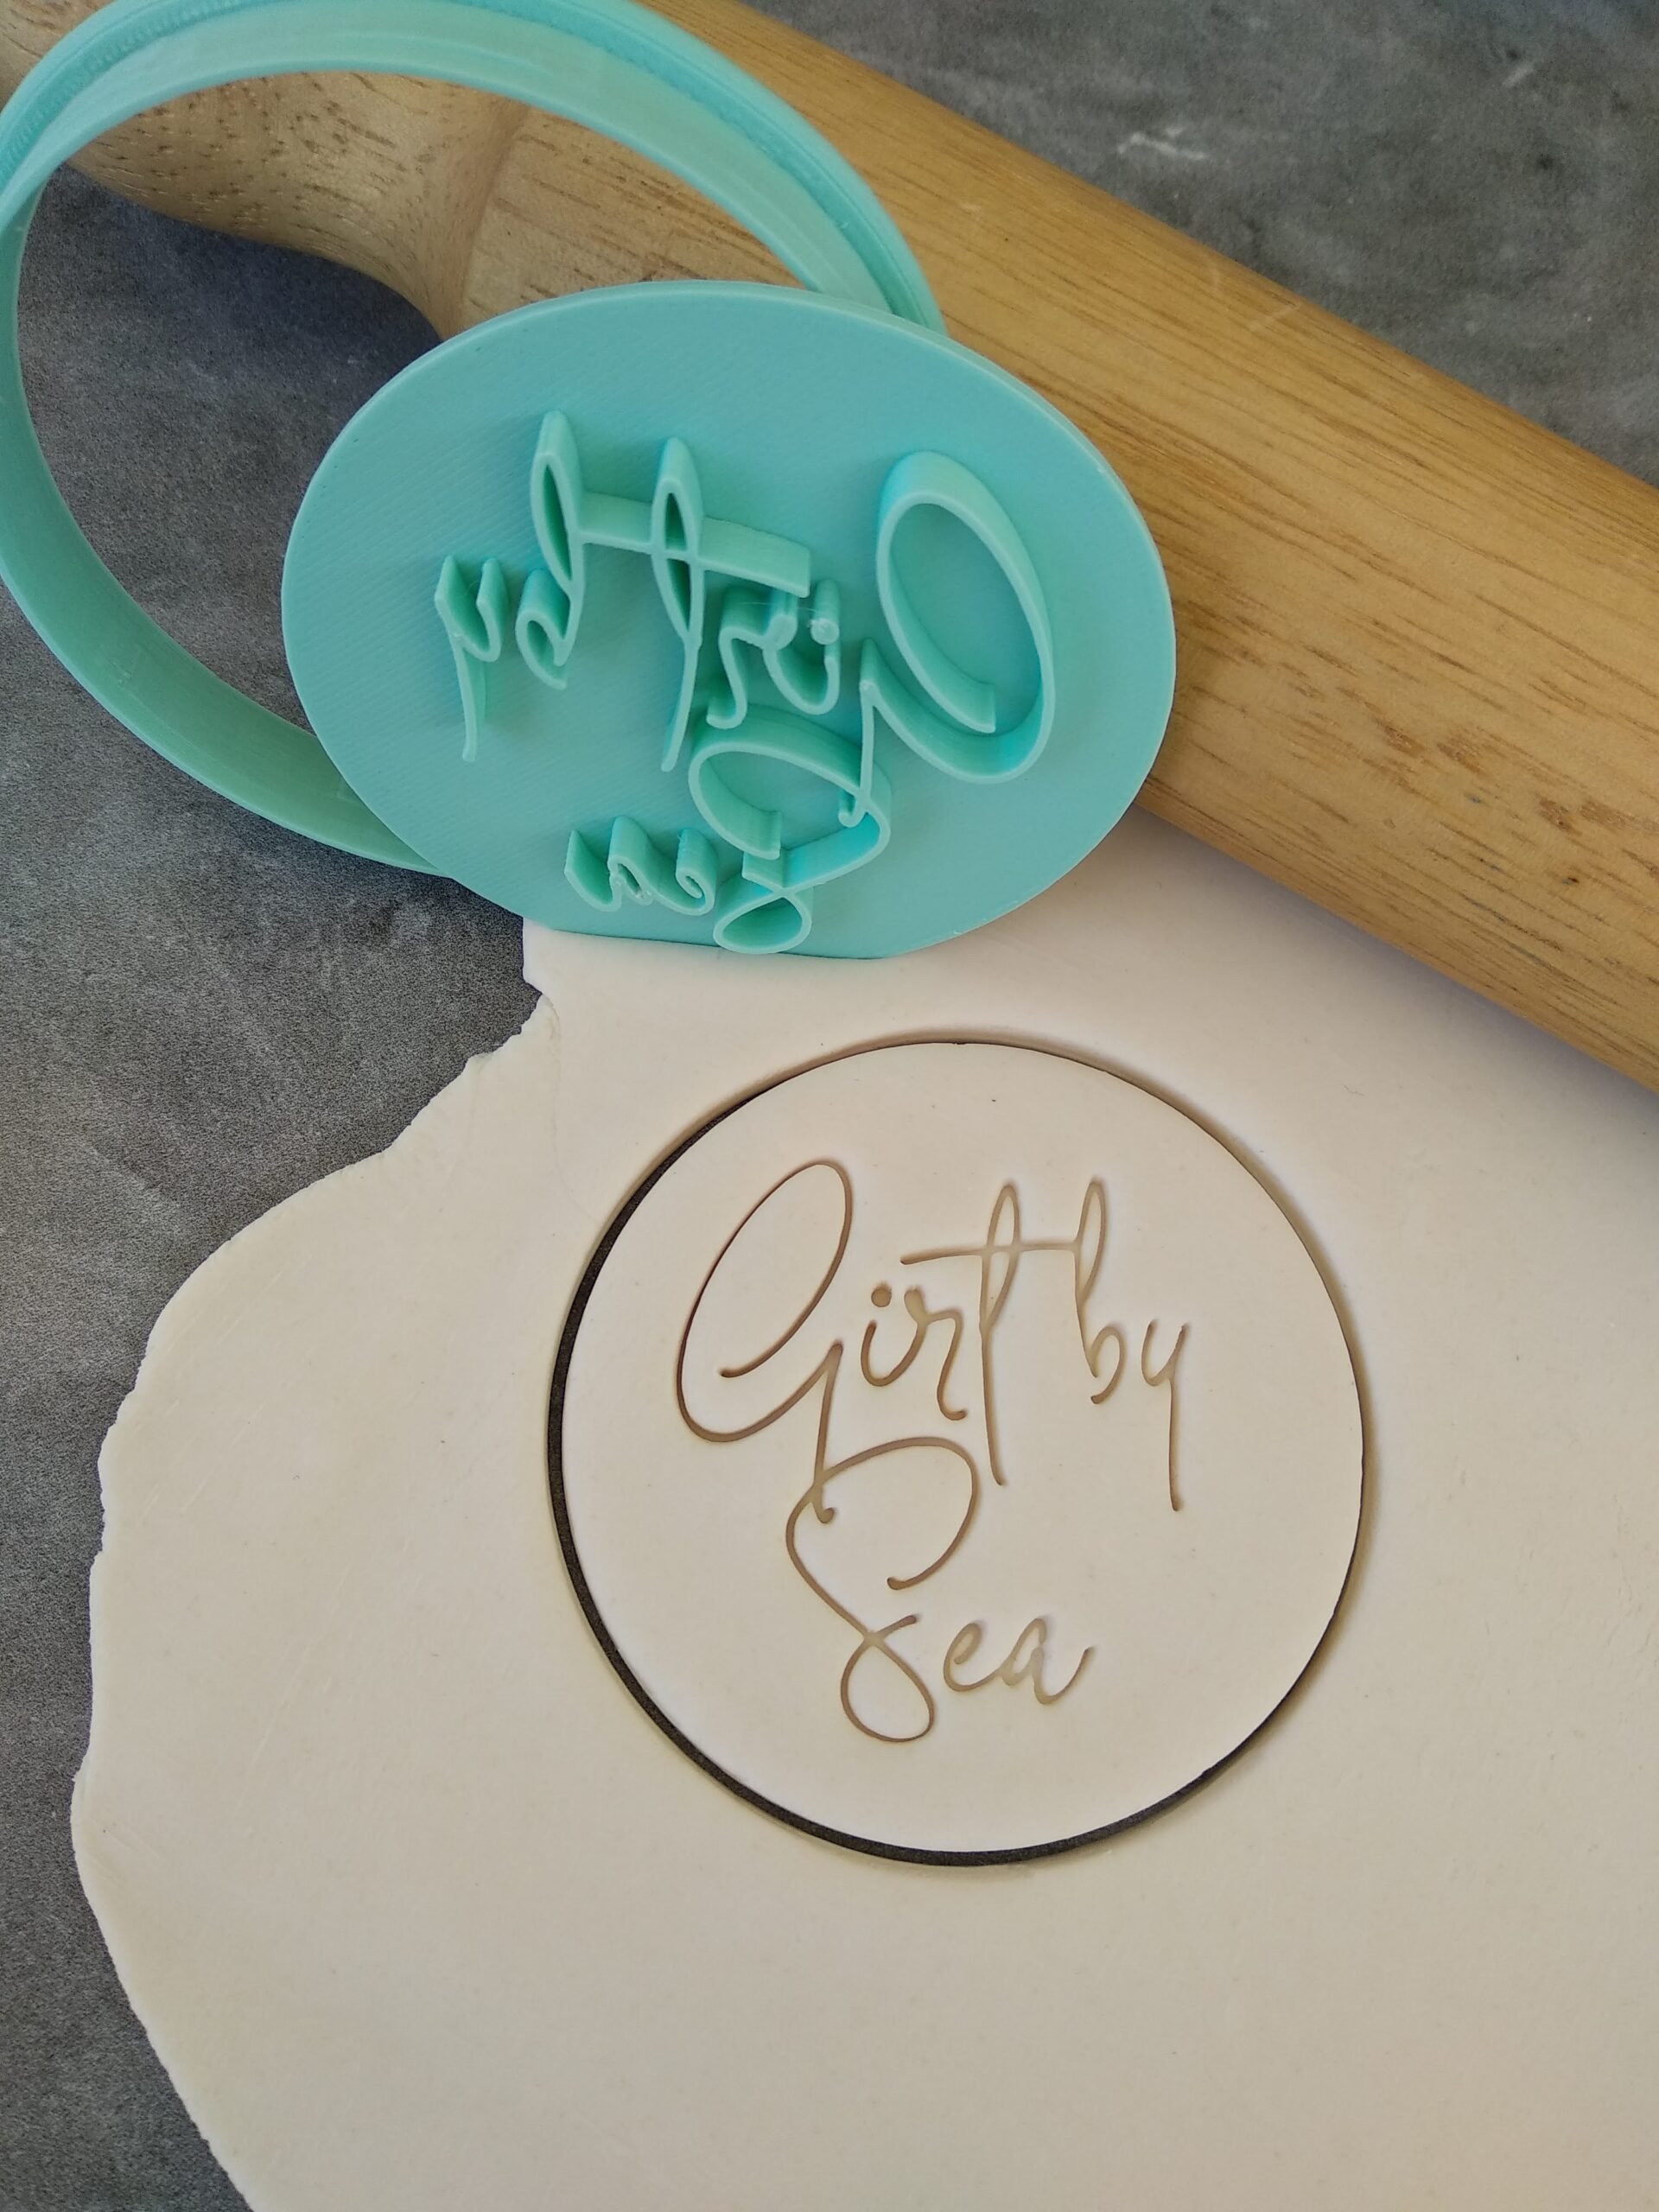 Girt By Sea Cookie Fondant Embosser Stamp and Cutter Australia Day National Anthem